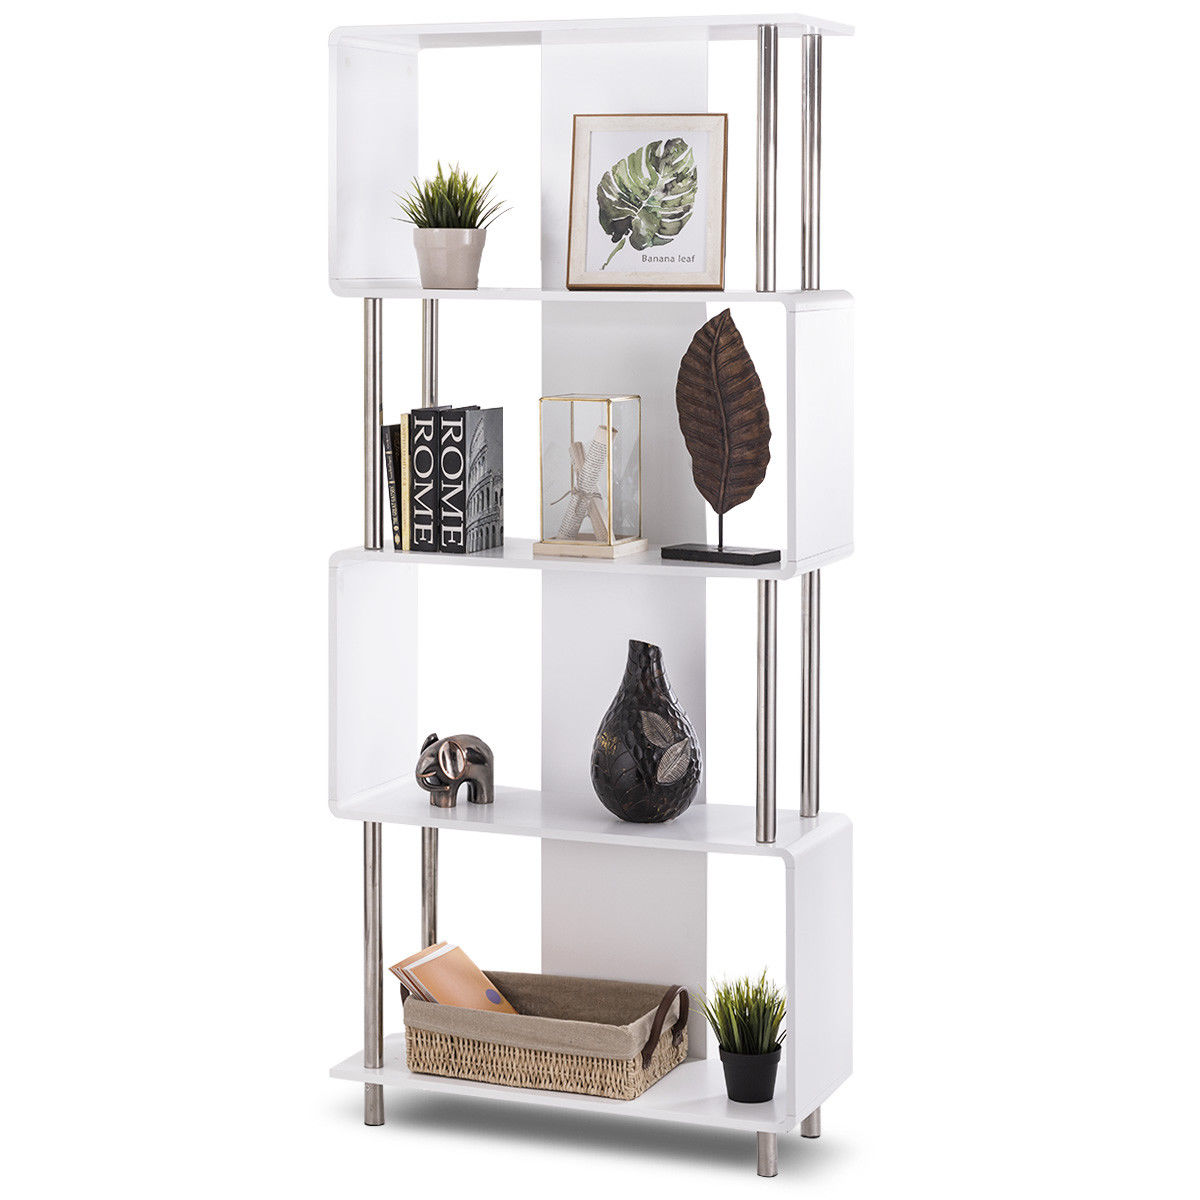 Giantex Industrial Style 4 Shelf Modern Bookcase Living Room Storage Display Unit Bookshelf White Home Furniture HW56698